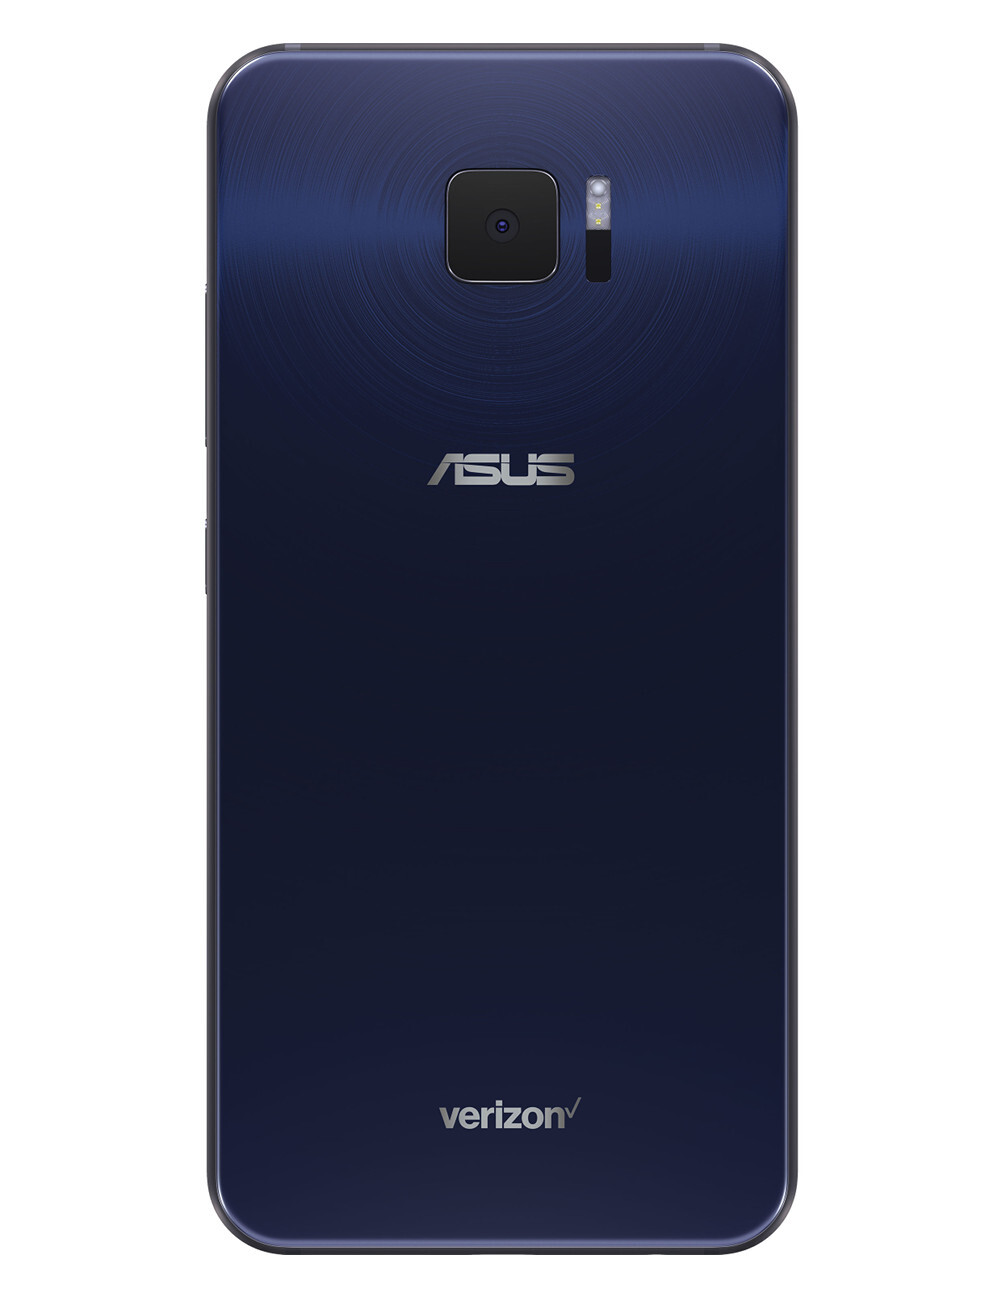 asus zenfone v specs. Black Bedroom Furniture Sets. Home Design Ideas